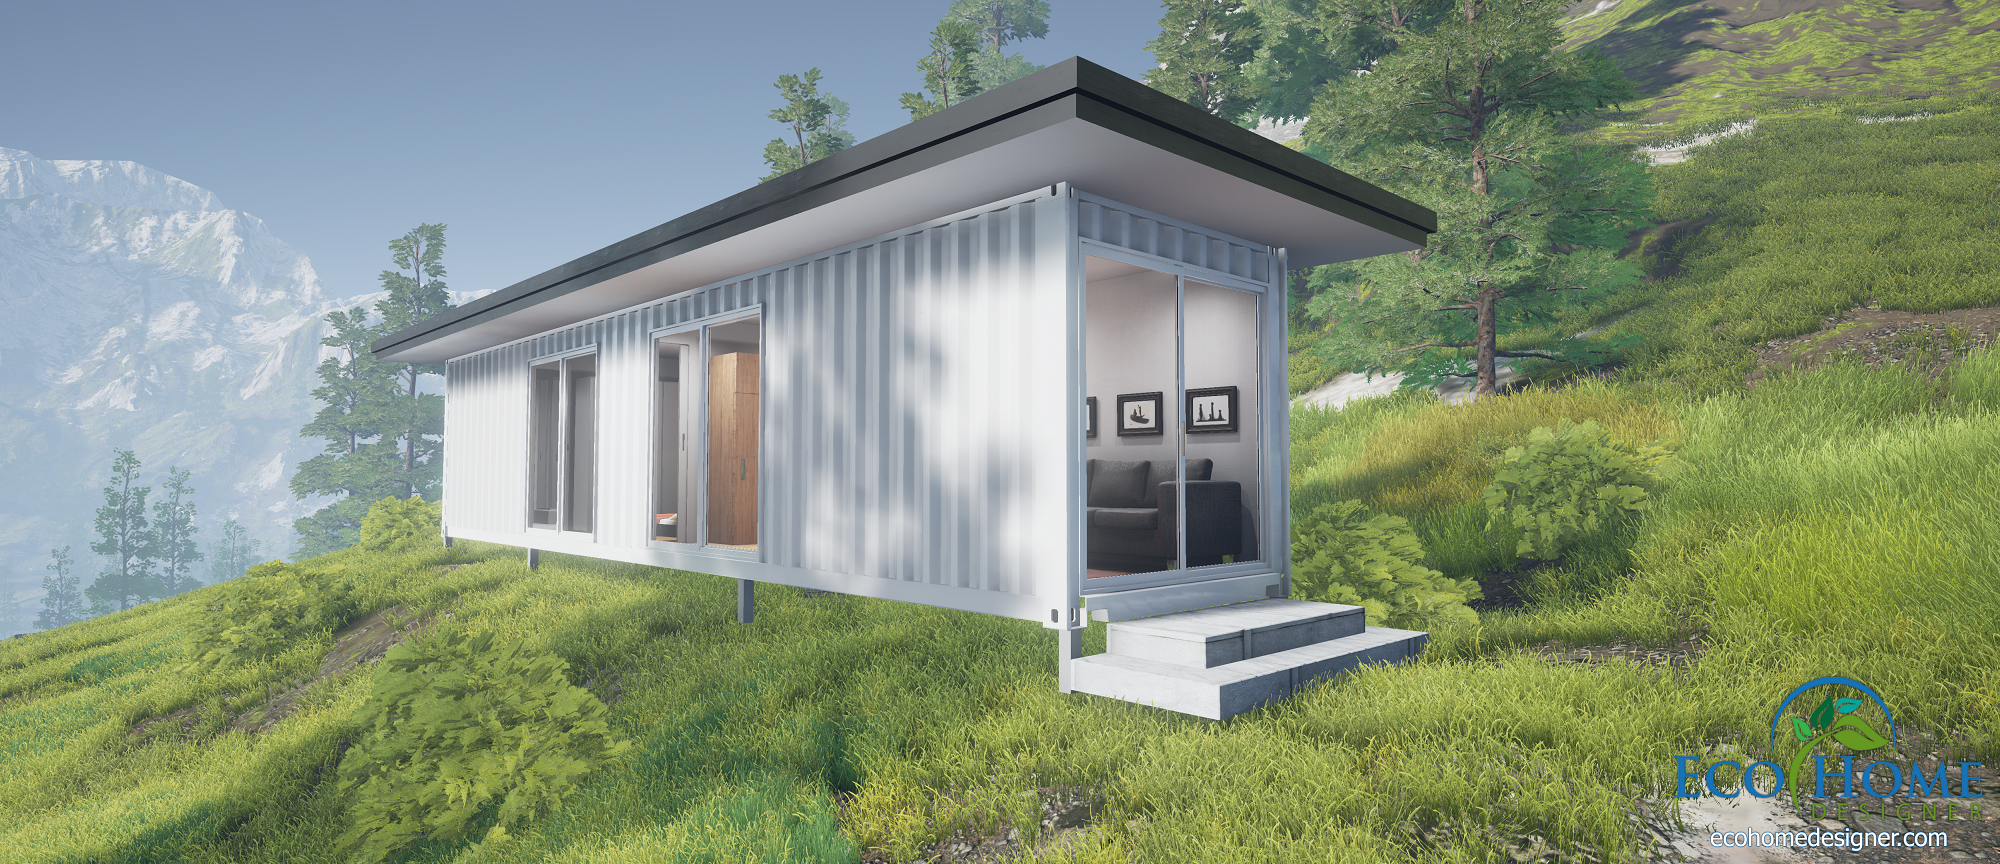 Sch1 single 40ft container cabin plans eco home designer for Www homee